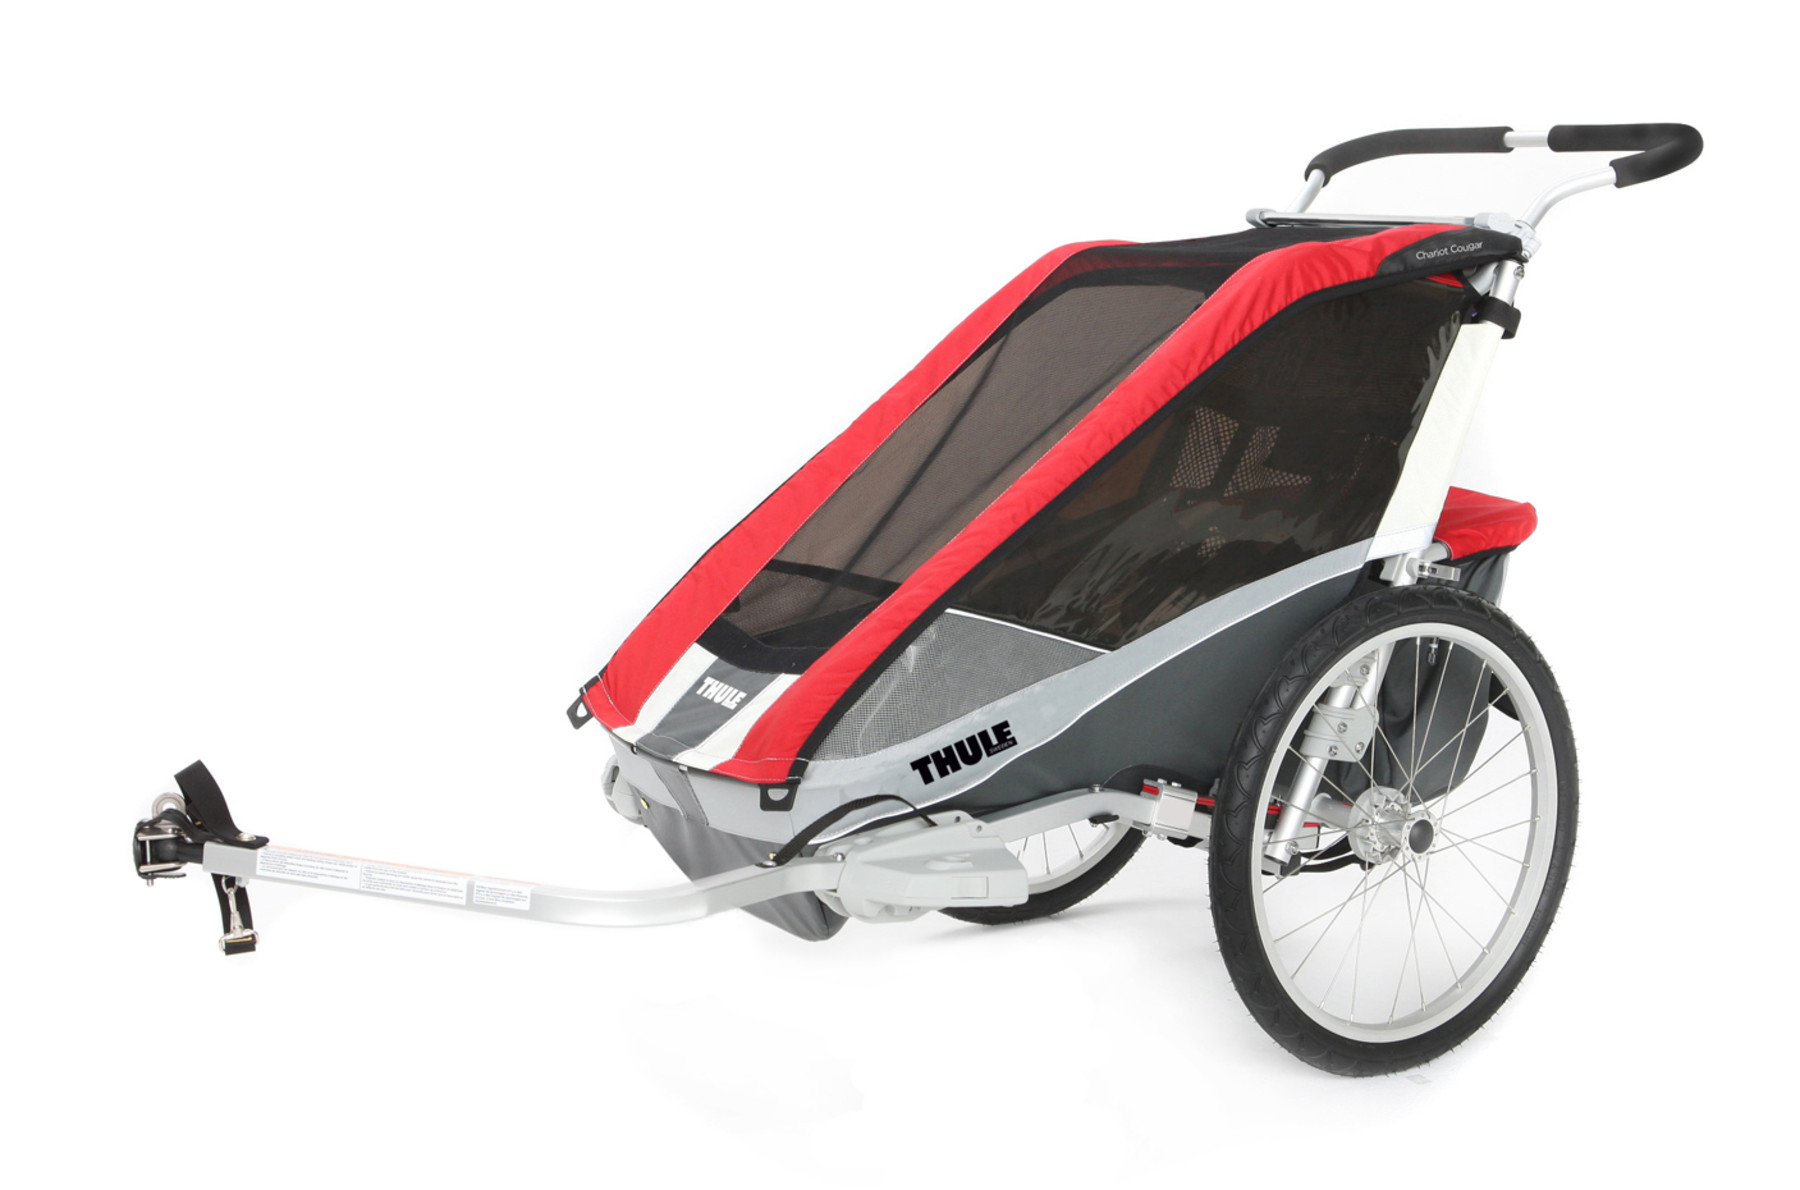 Thule Chariot Cougar1 Red Bike